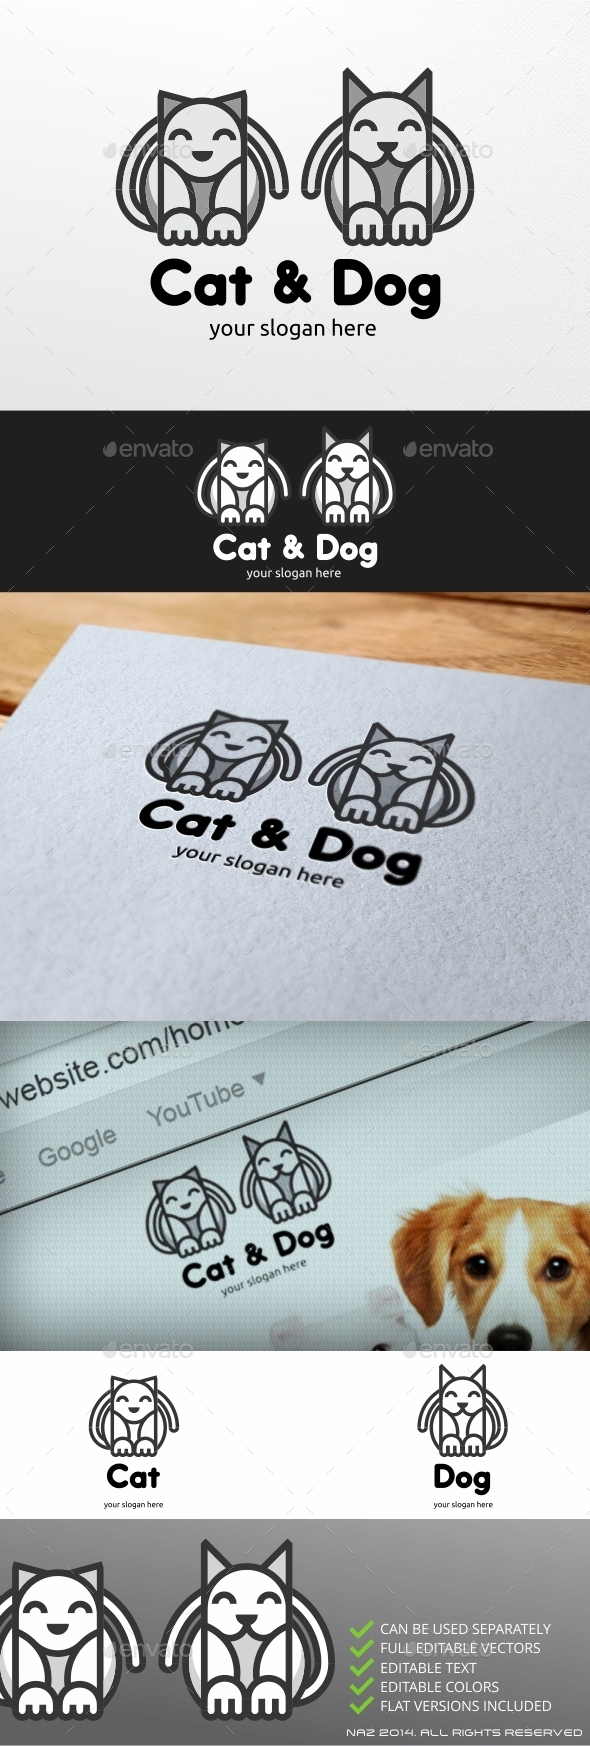 Cat and Dog Logo - Animals Logo Templates